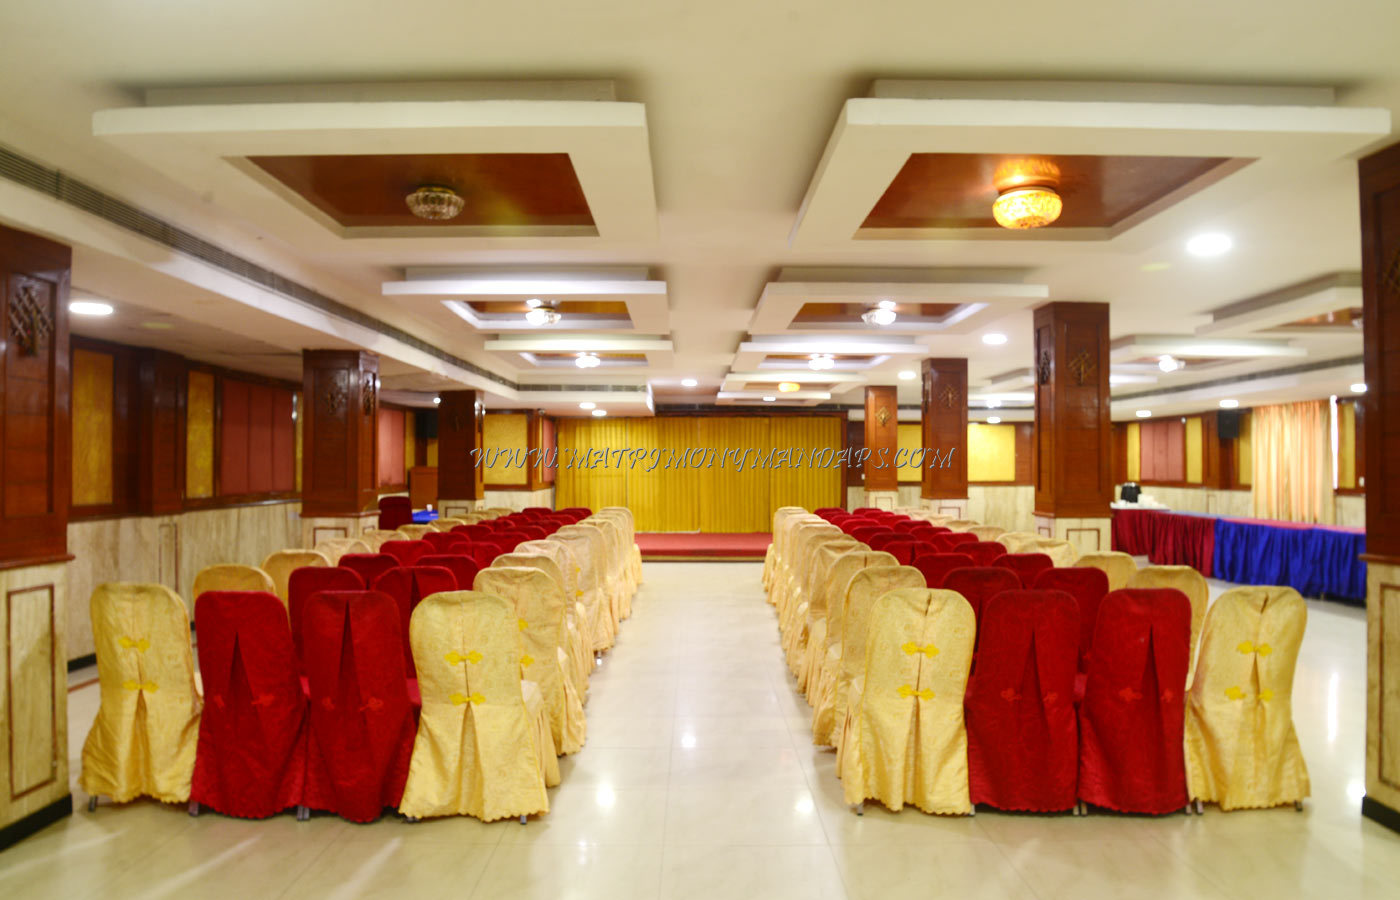 Find the availability of the Maple Tree Hotels Red Maple (A/C) in Vadapalani, Chennai and avail special offers